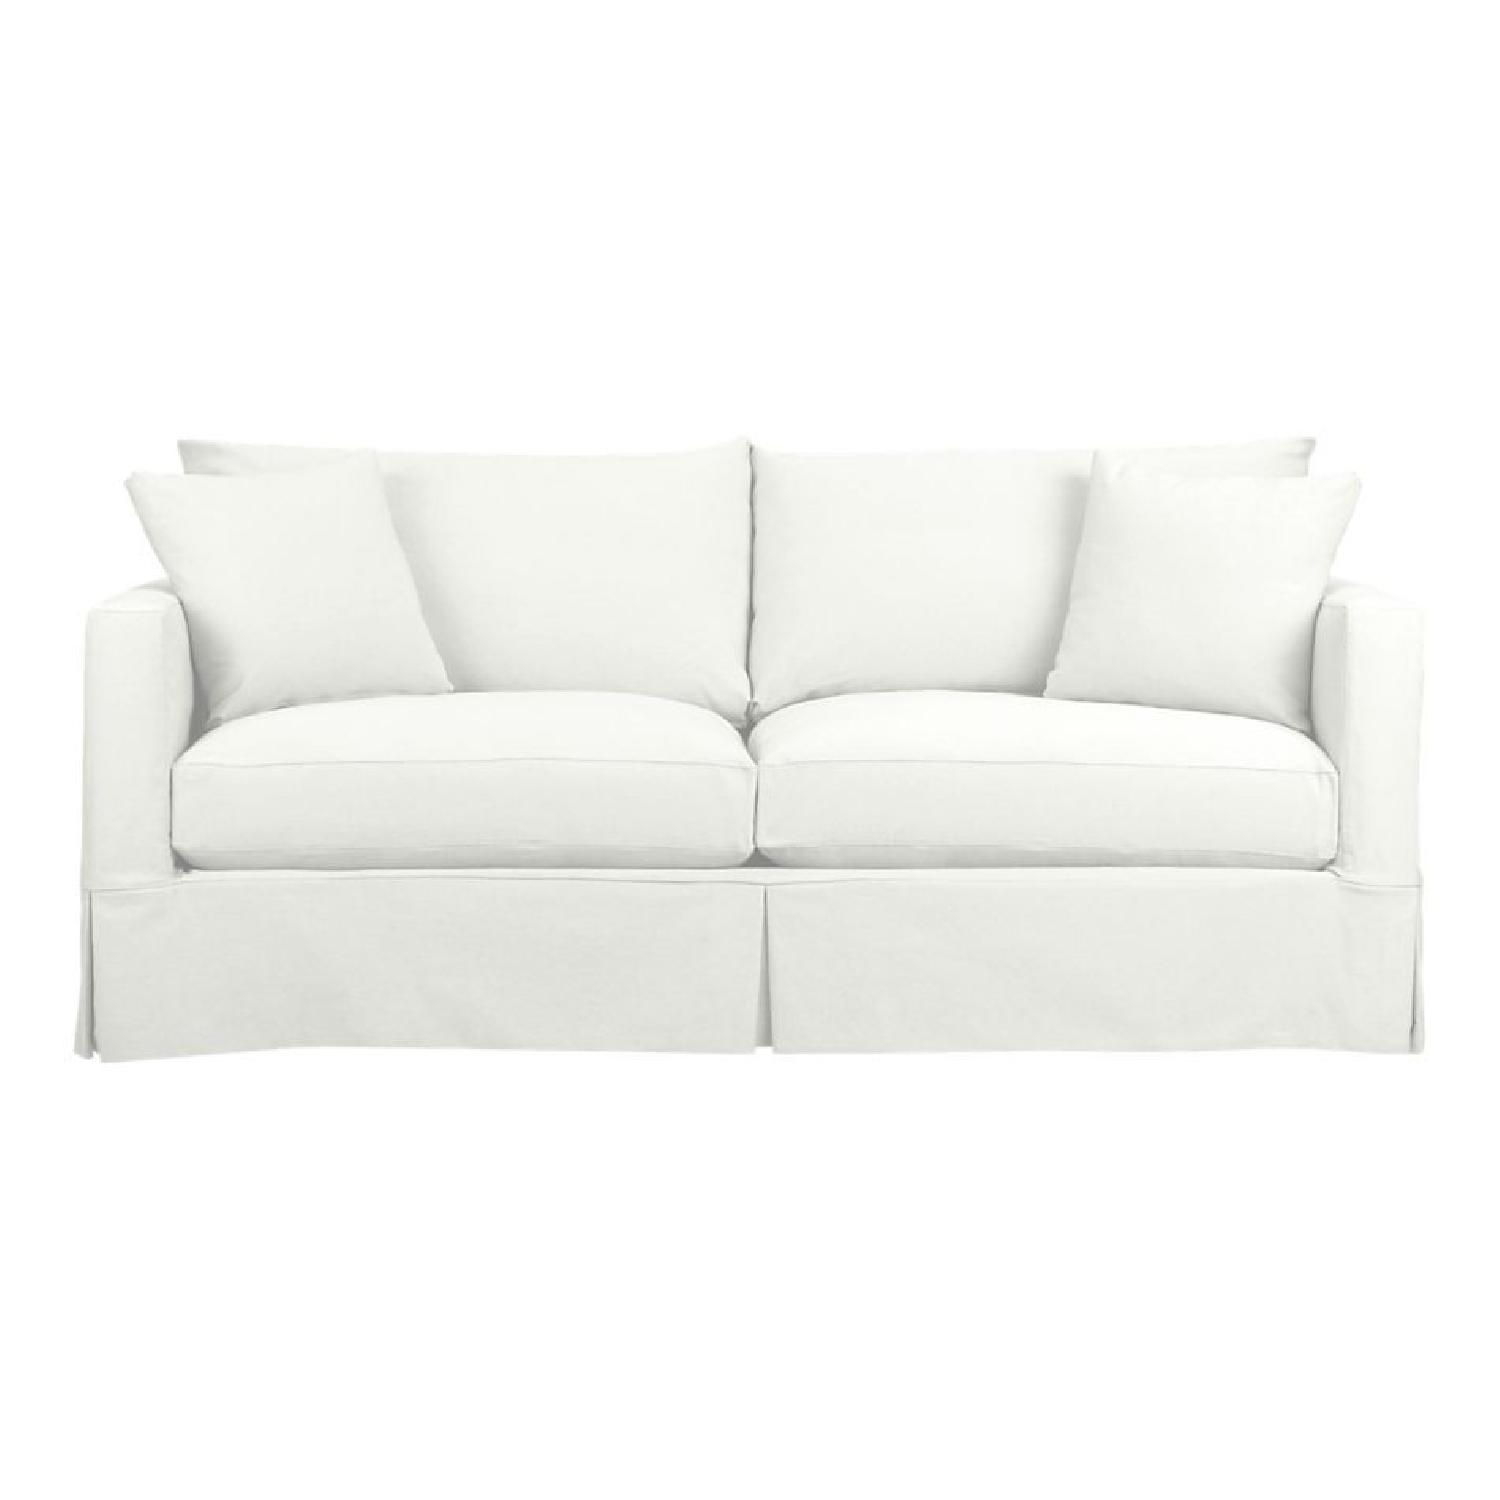 Crate & Barrel Slipcovered Sleeper Sofa